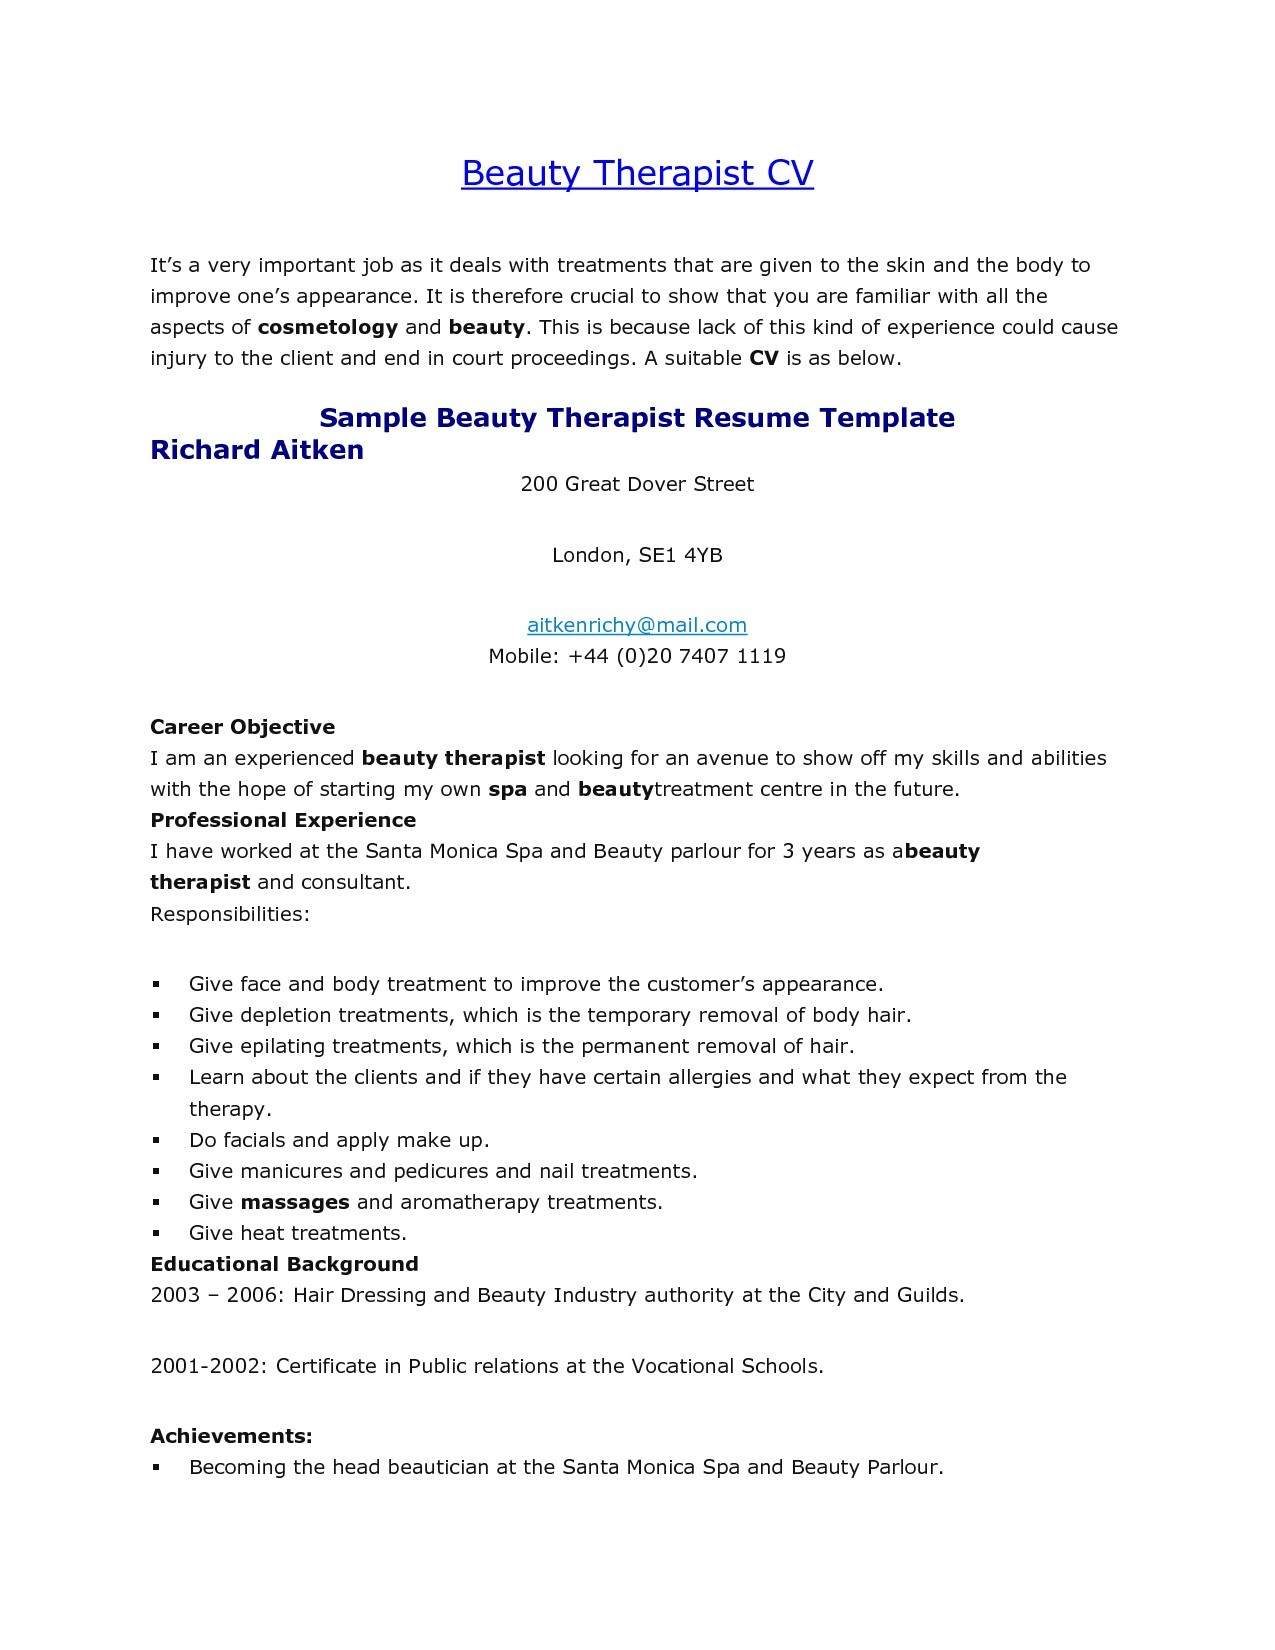 Massage therapist Resume Sample - Massage therapy Resume Best Luxury Resume Examples for